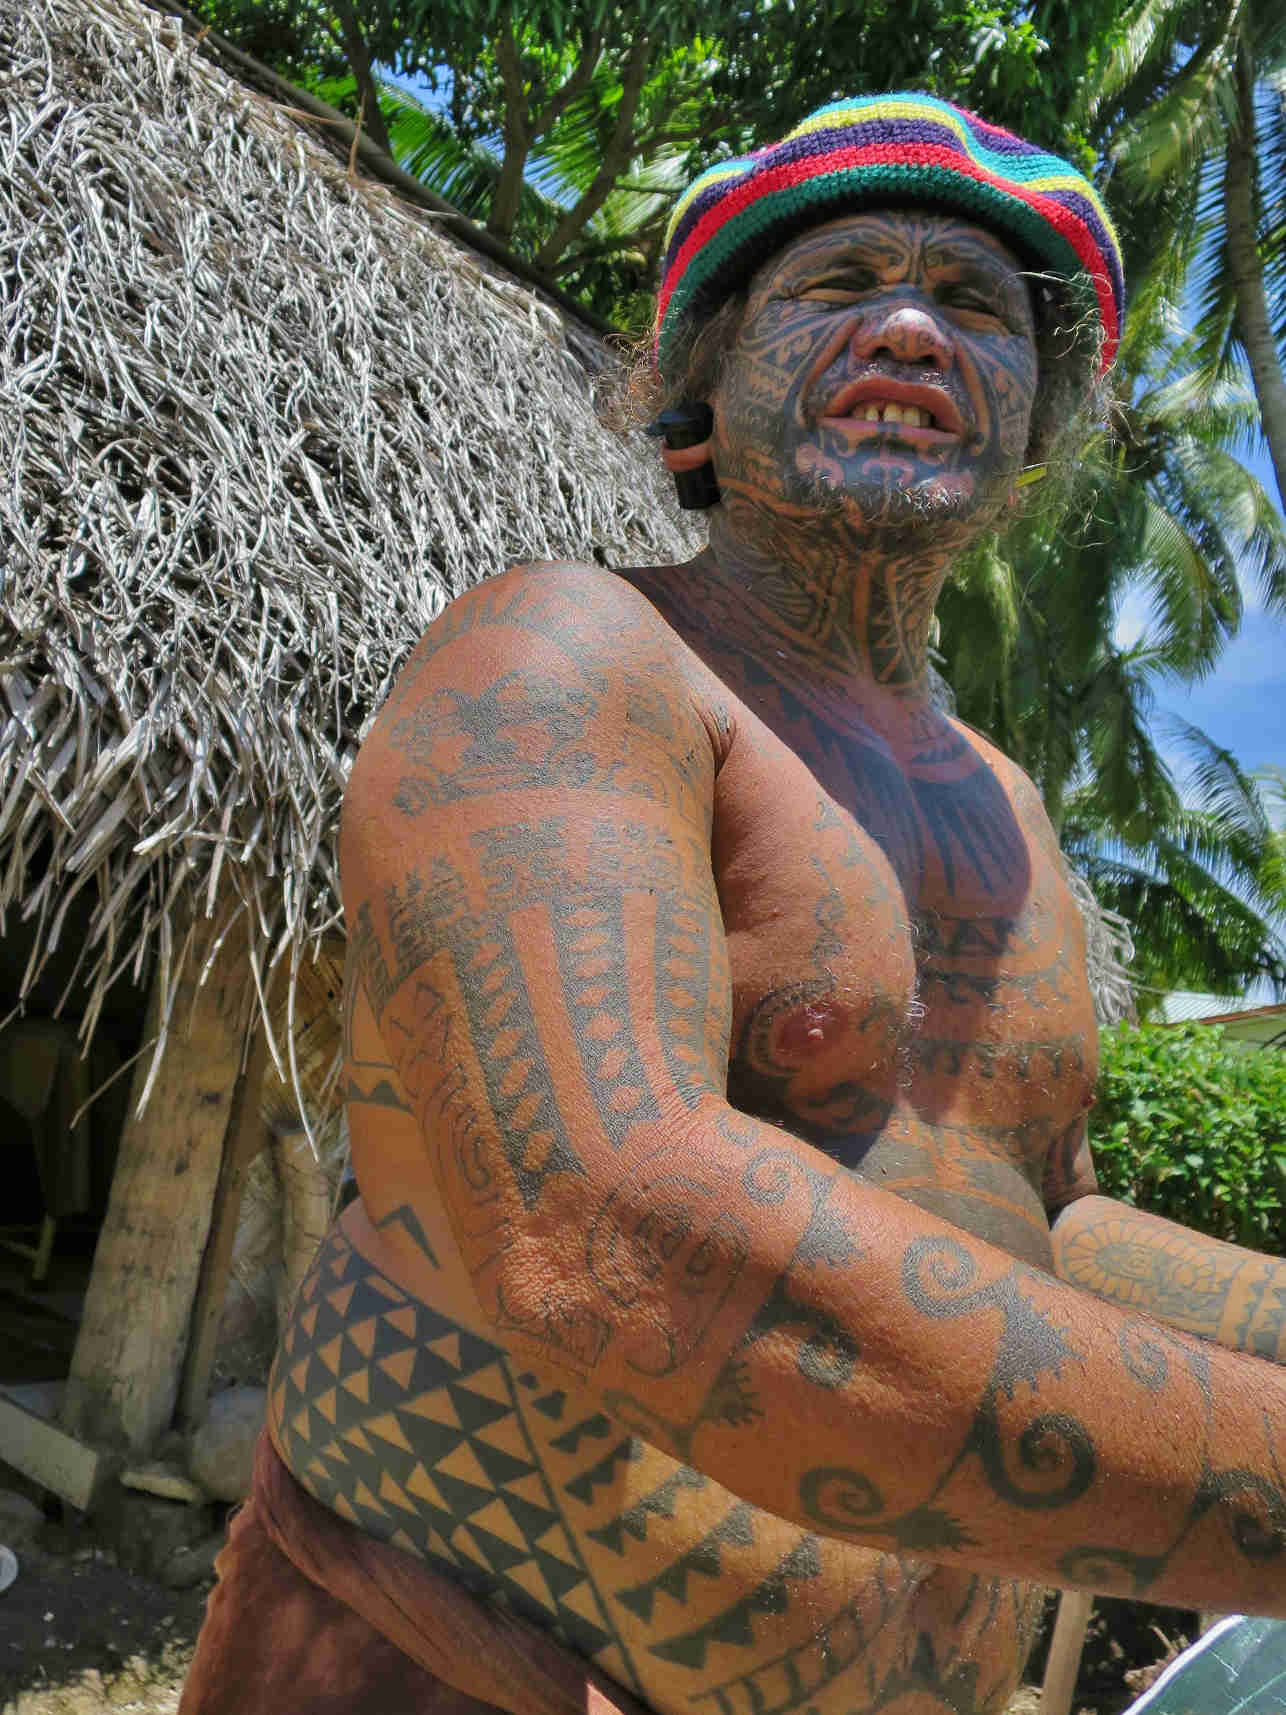 The tattoo artist Tavita makes body art the traditional way with carved boar bones and nut ink